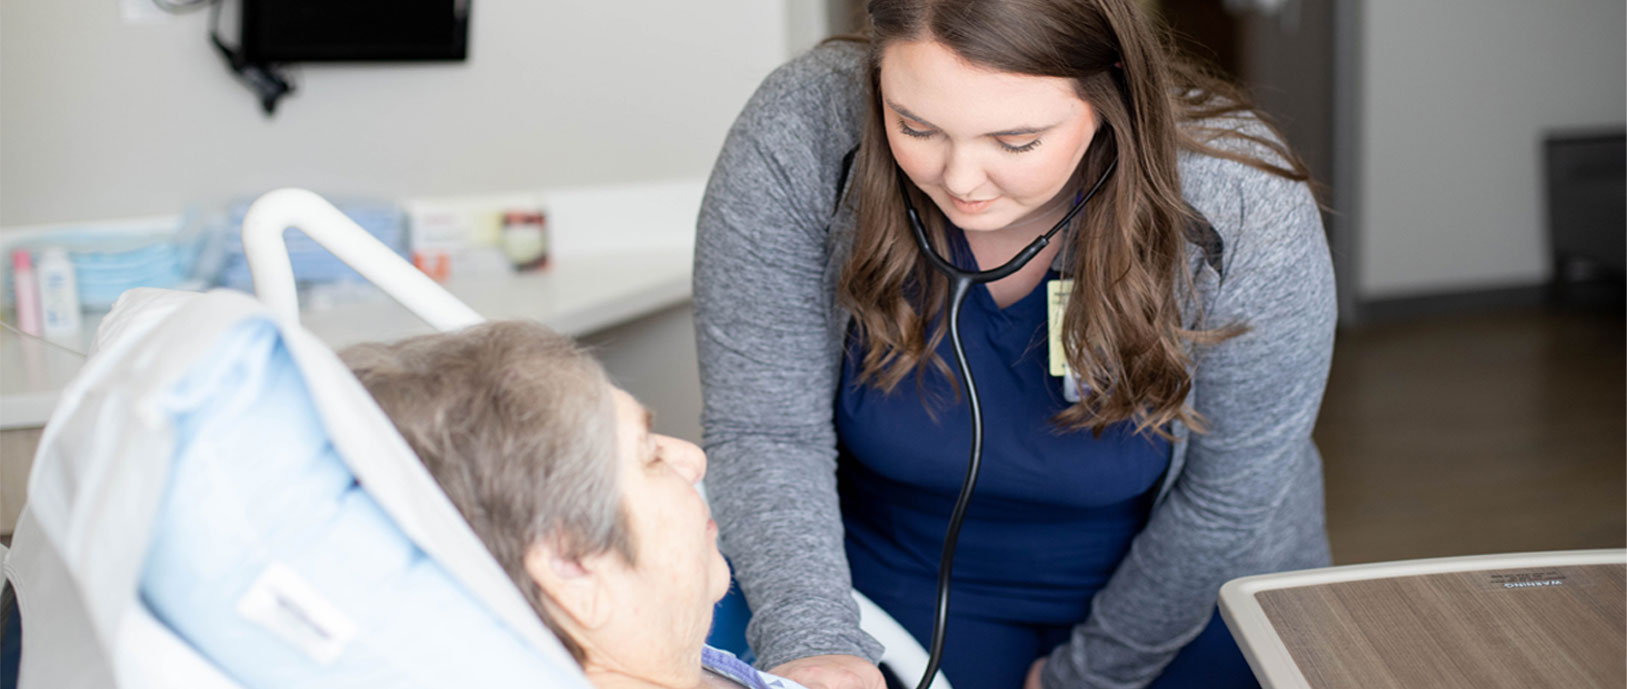 a nurse checking breath sounds on a patient laying in a hospital bed.